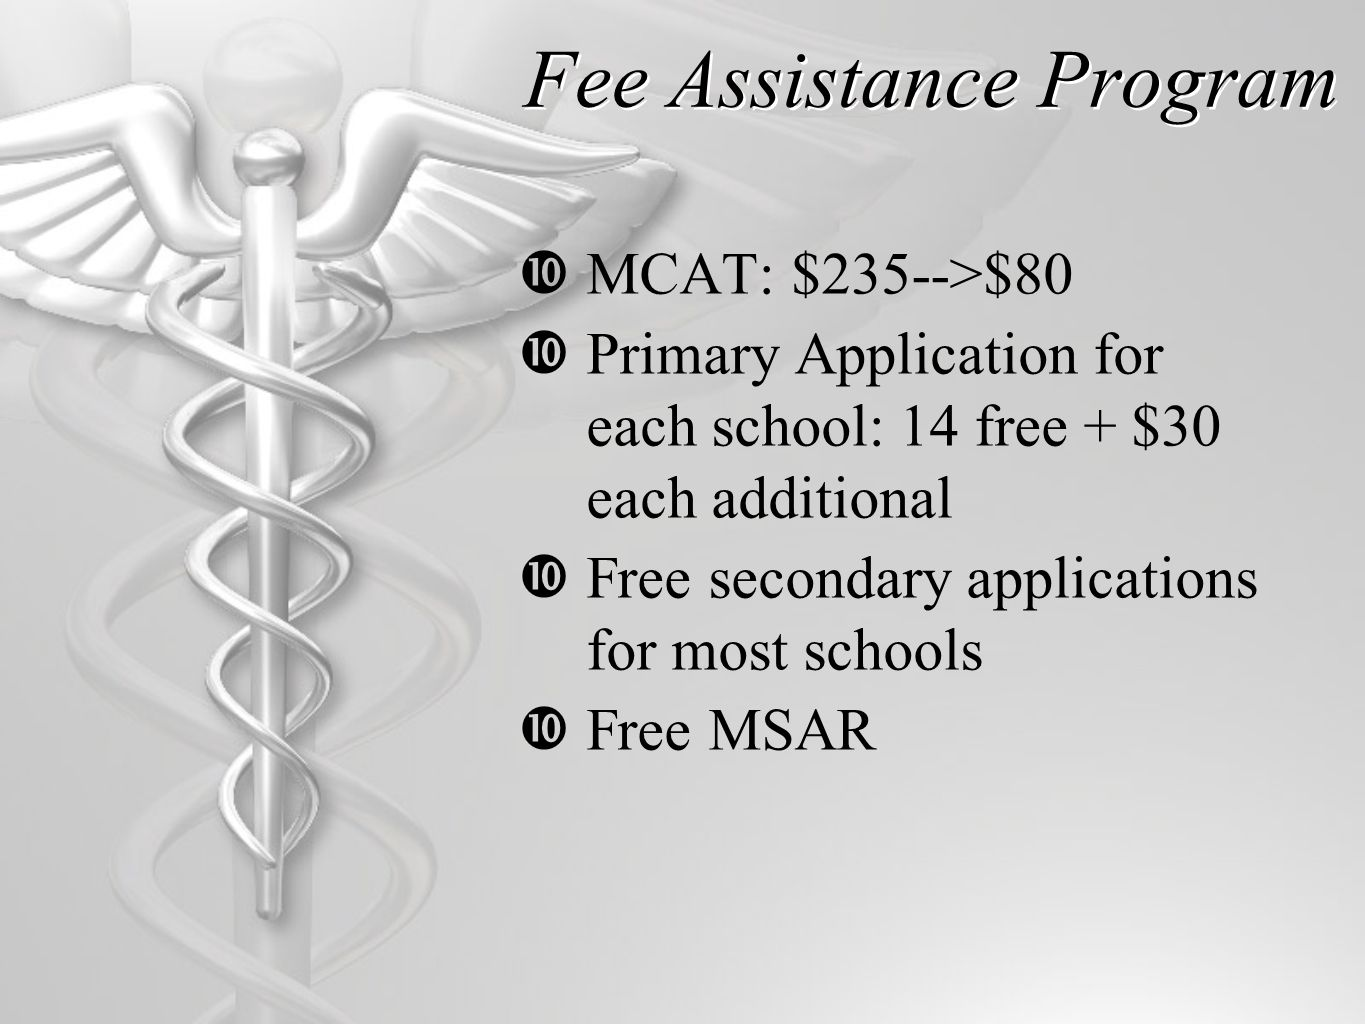 Fee Assistance Program  MCAT: $235-->$80  Primary Application for each school: 14 free + $30 each additional  Free secondary applications for most schools  Free MSAR